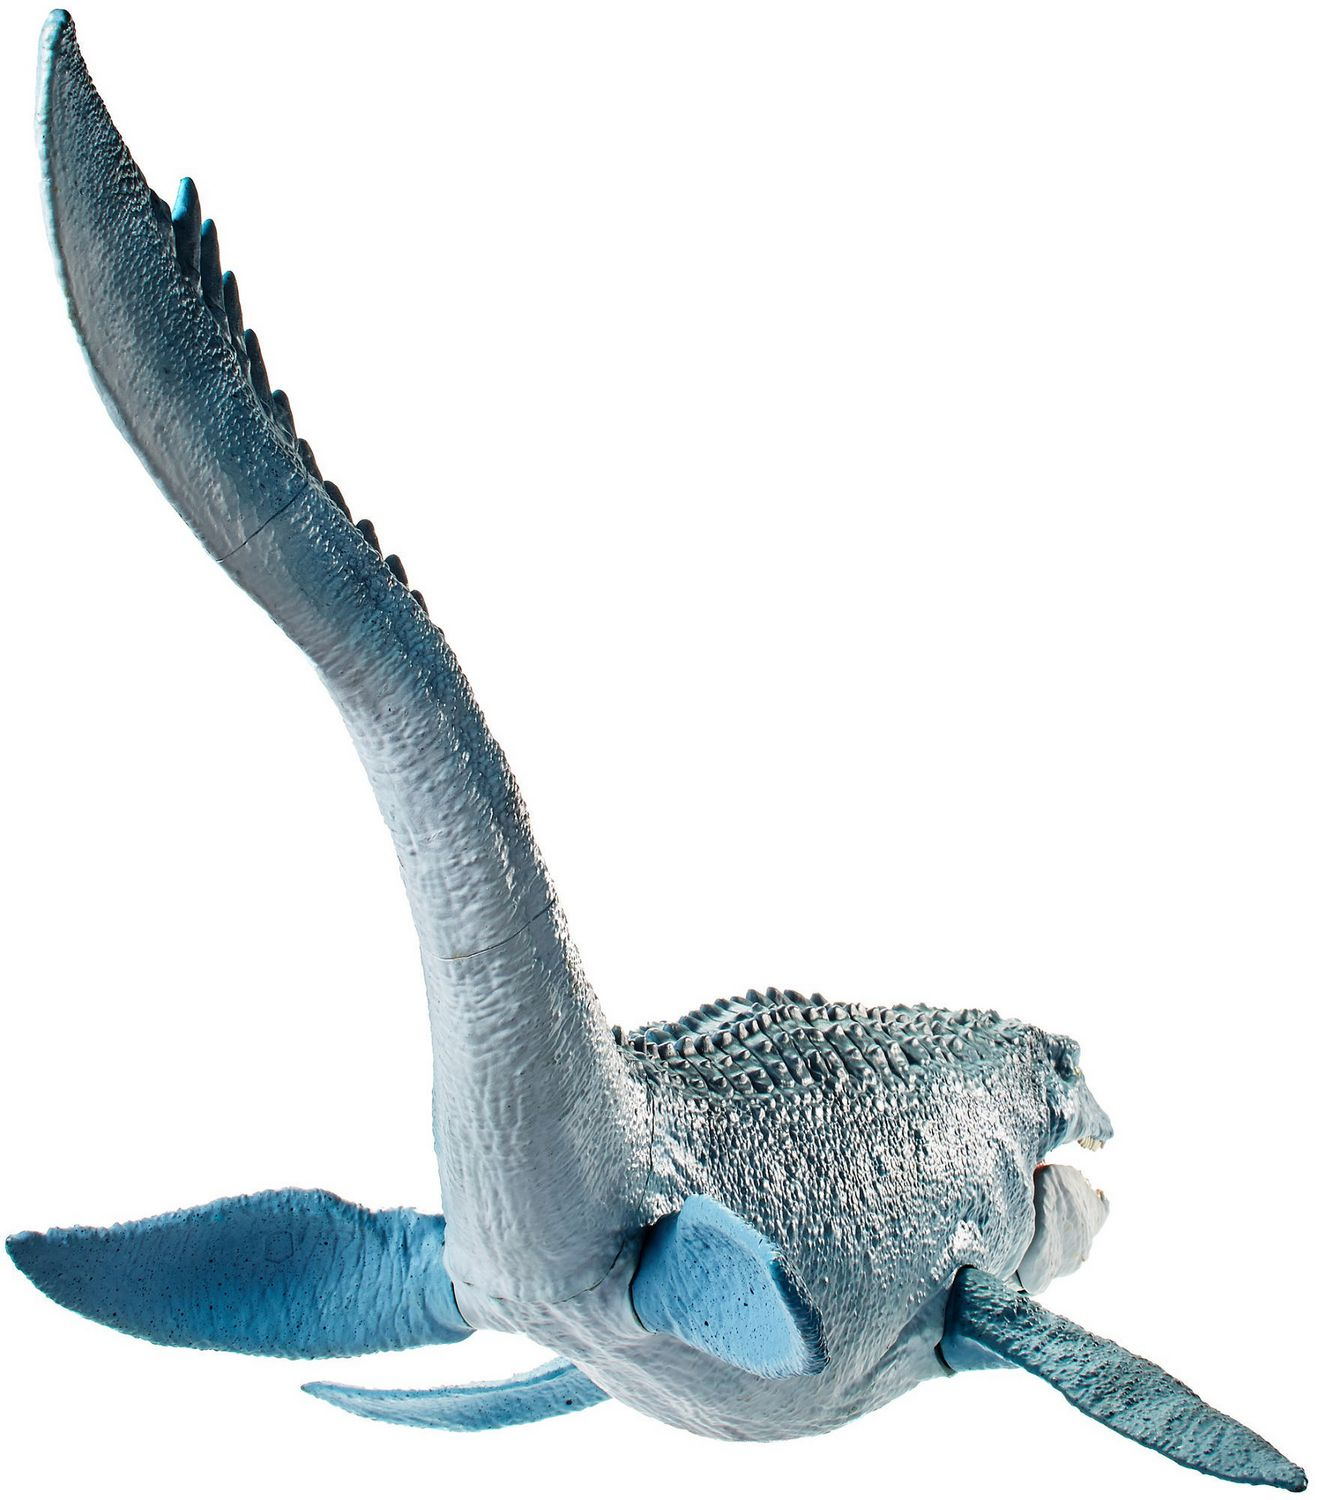 Jurassic World Real Feel Mosasaurus Figure Authentique Peau texturée réaliste